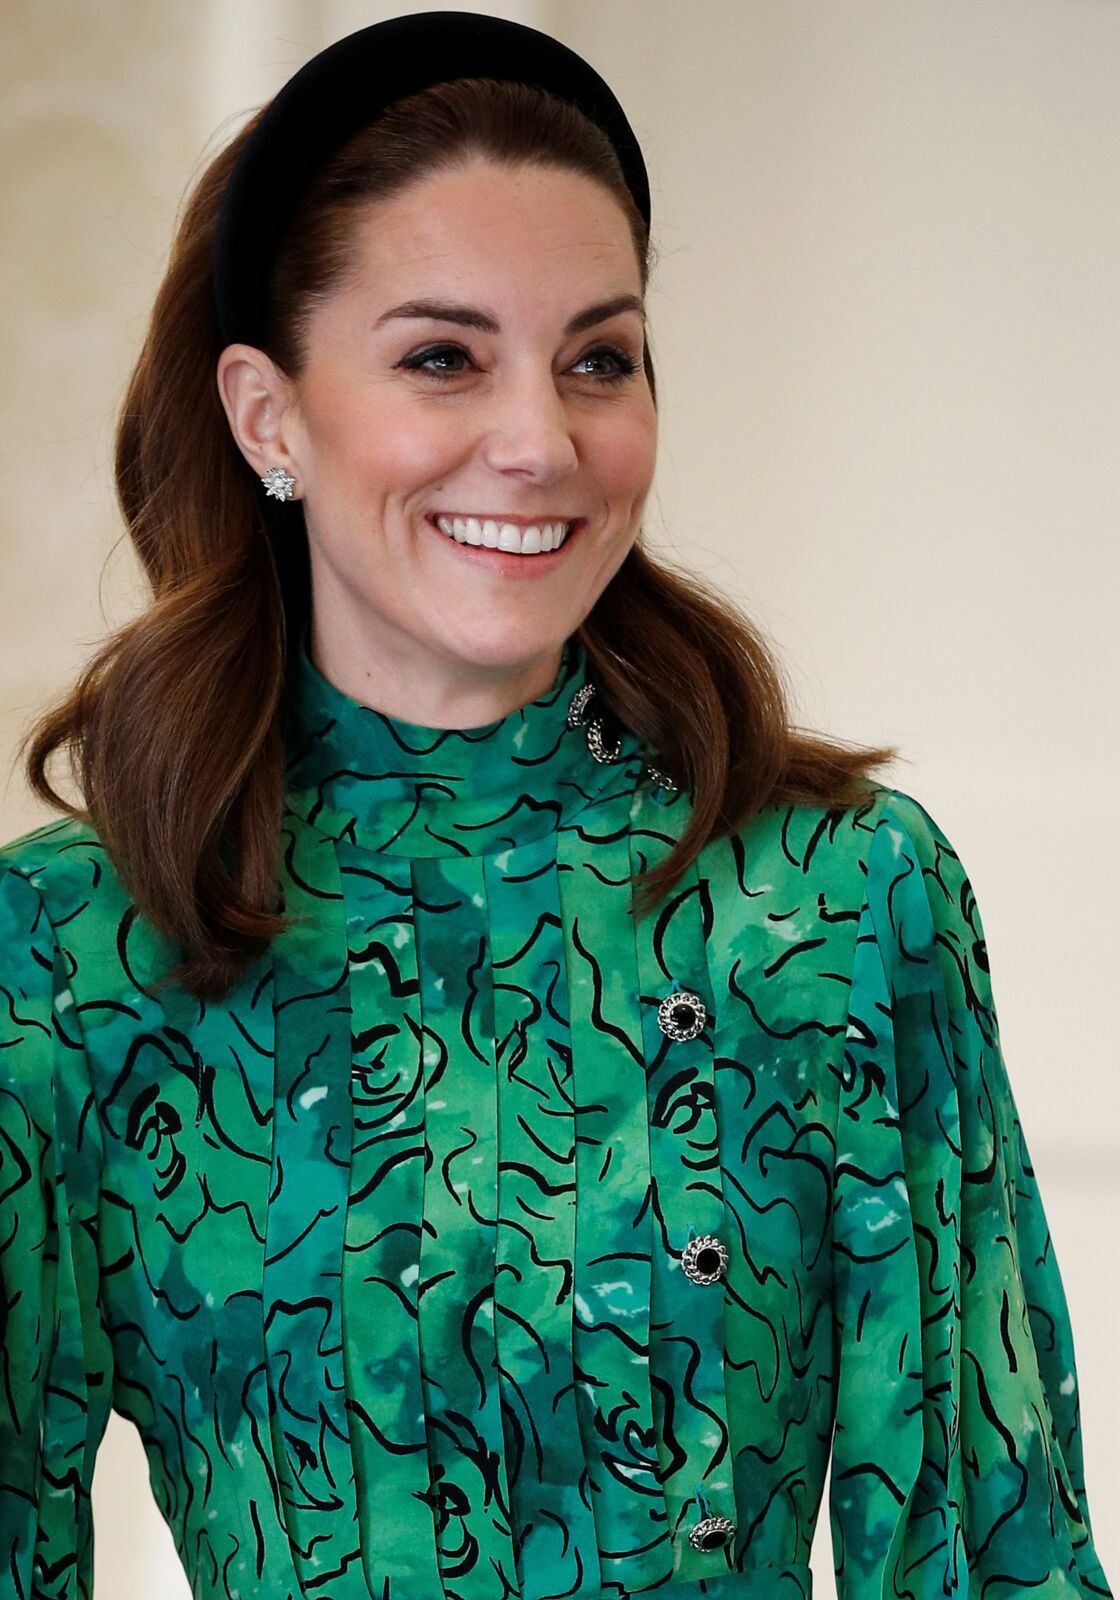 Kate Middleton porte des boucles d'oreilles de la maison royale Asprey London à plus de 19 000 €.